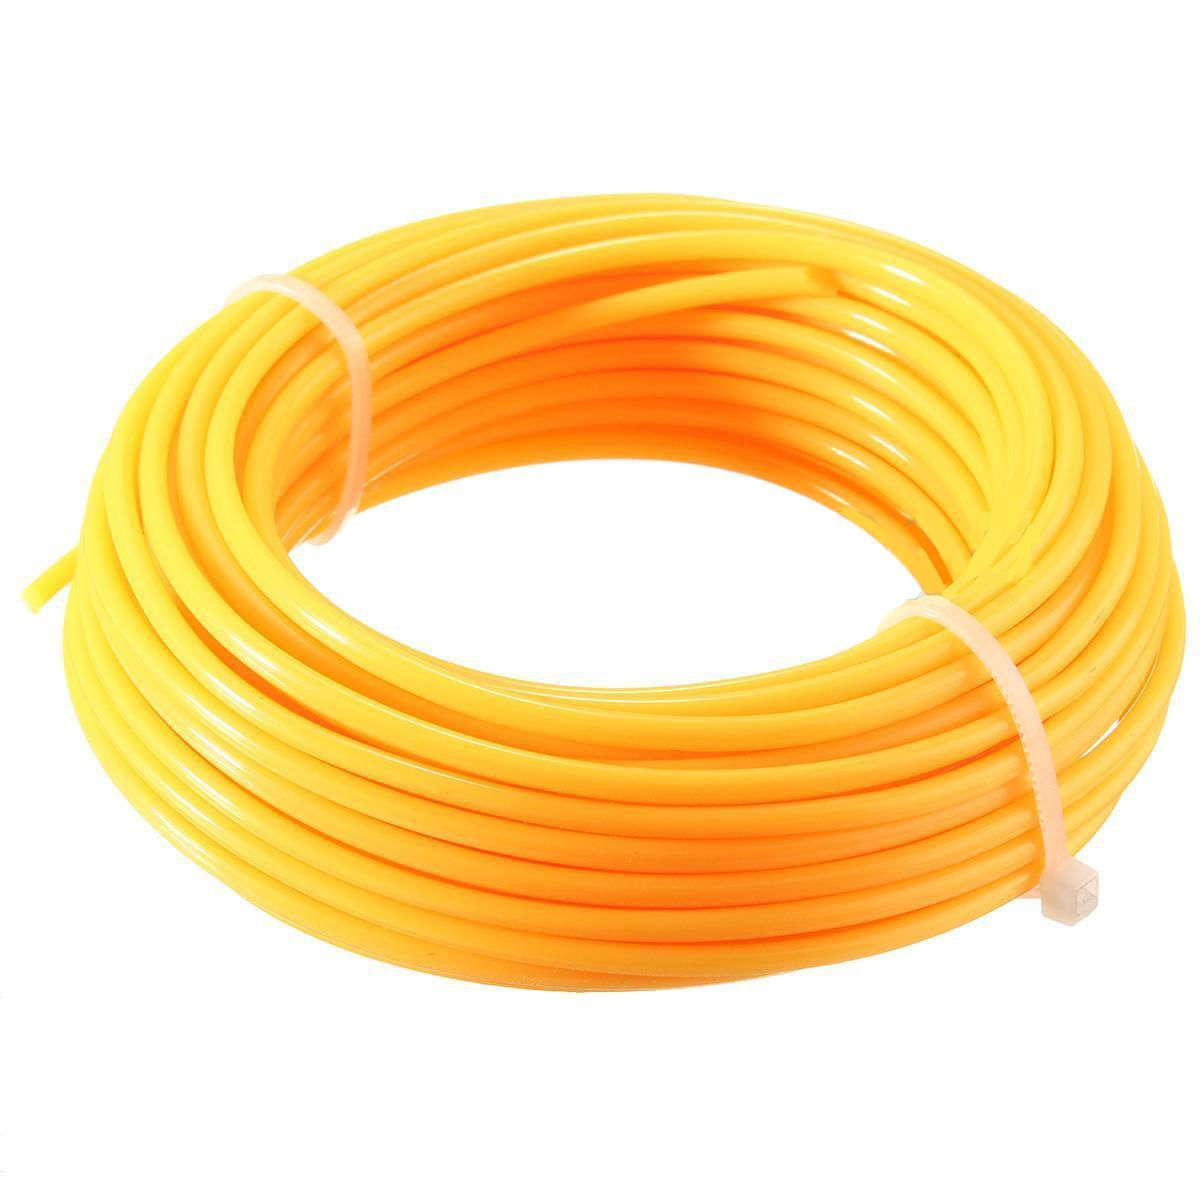 3 Color Nylon Strimmer Line Cord Wire Brushcutter Round String Rope 2mm*10m Mayitr Garden Tools oumily reflective multi purpose paracord nylon rope cord reflective grey 30m 140kg